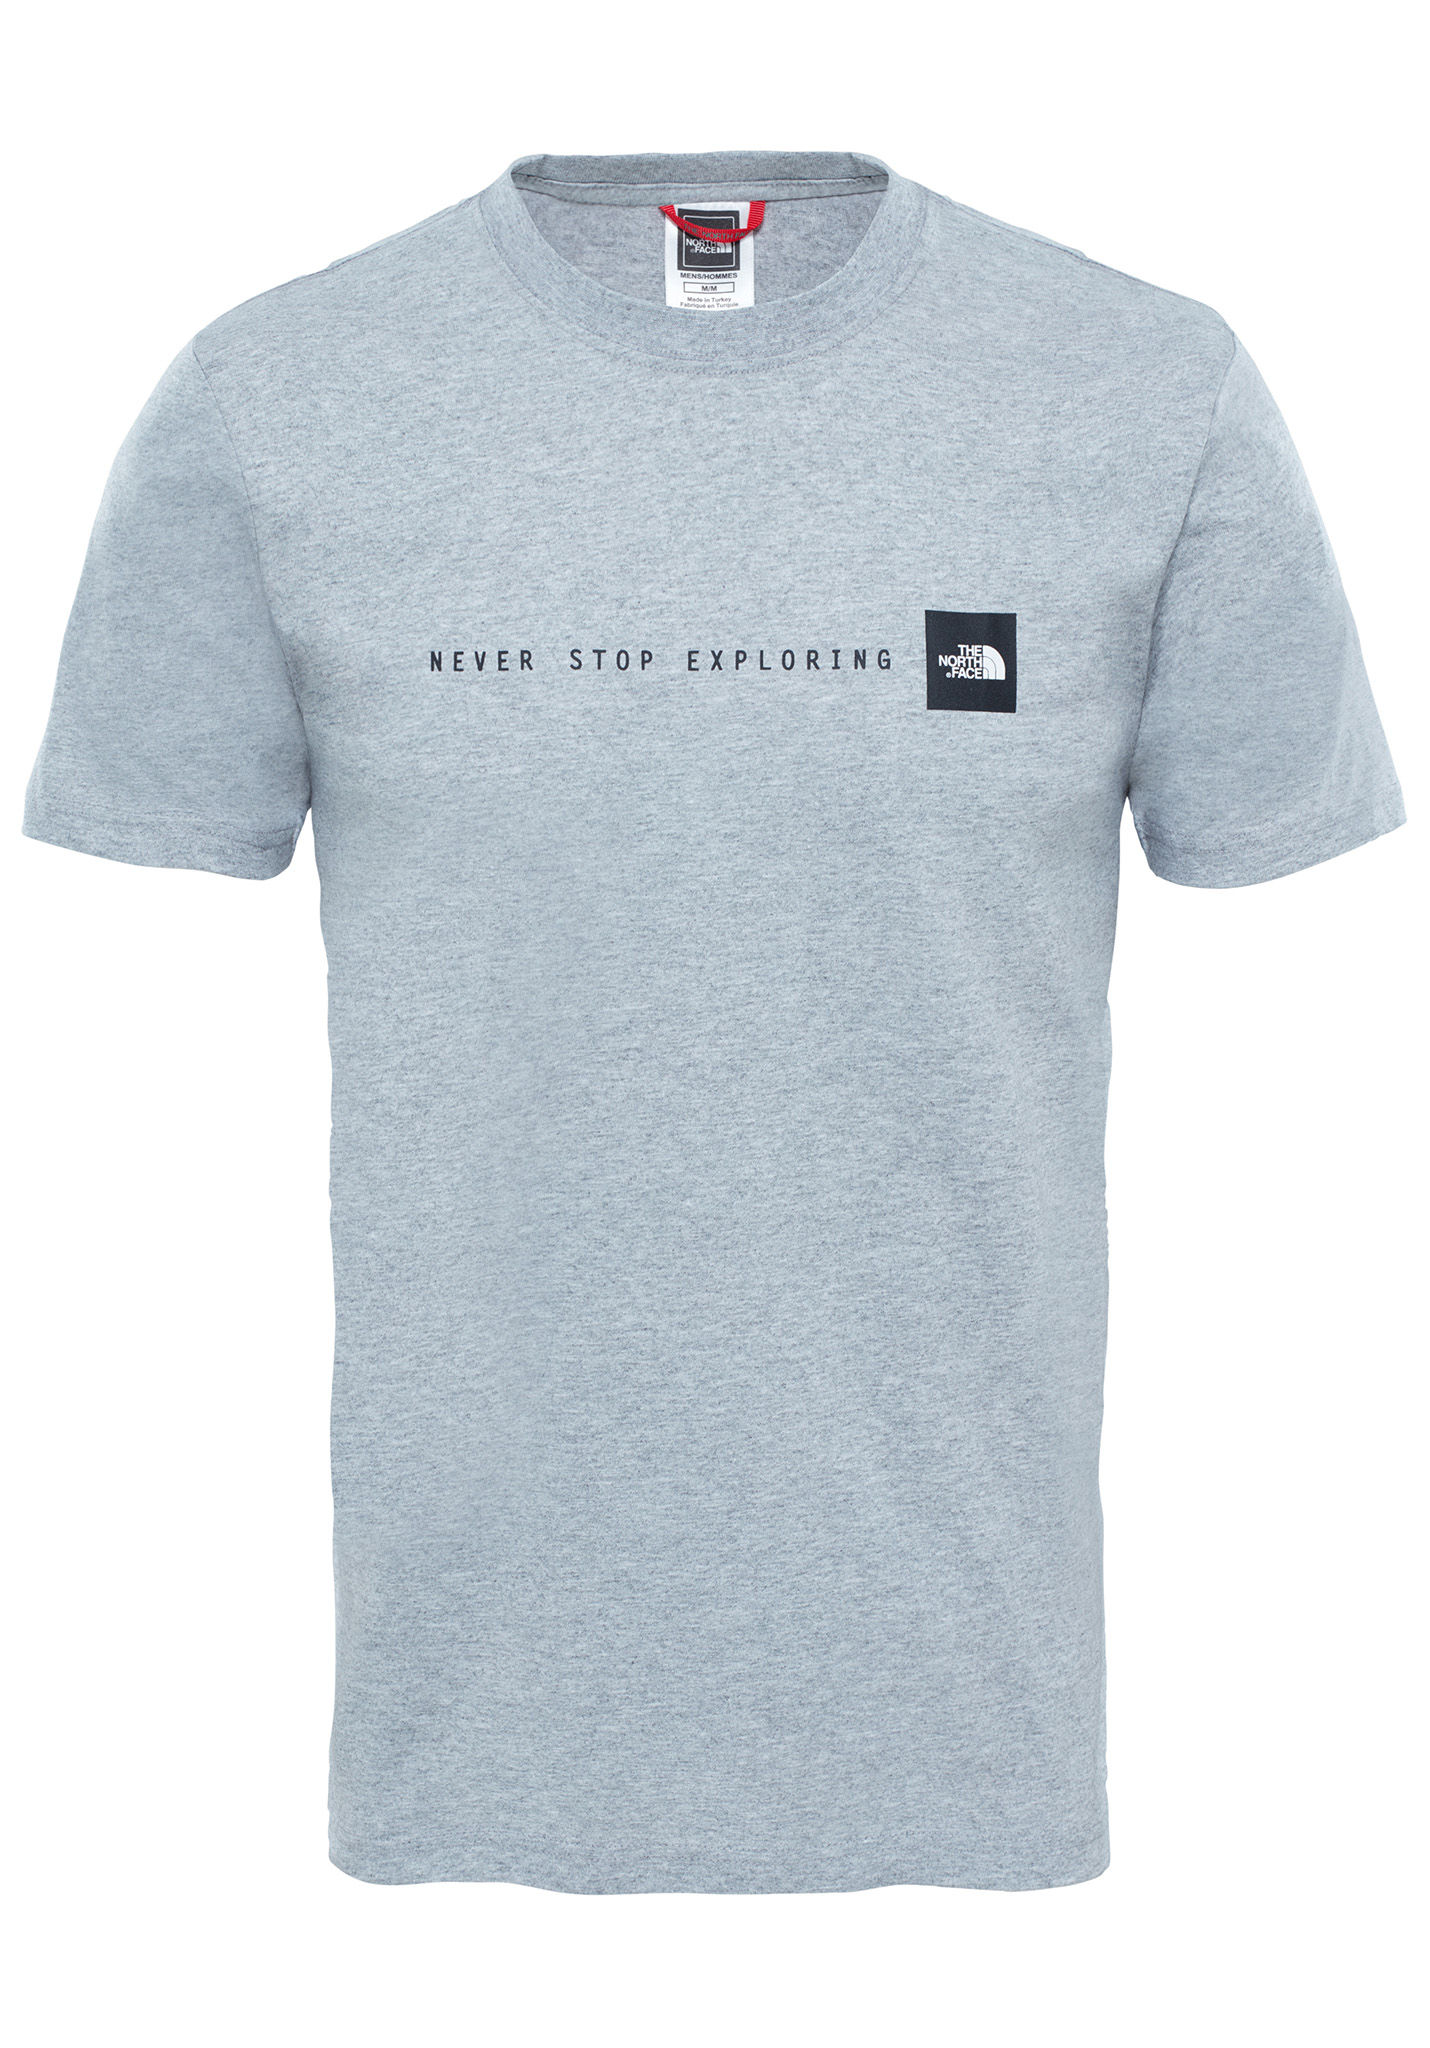 Stop Face Never The Camiseta North Para Hombres Gris Exploring nXNw8OPZ0k